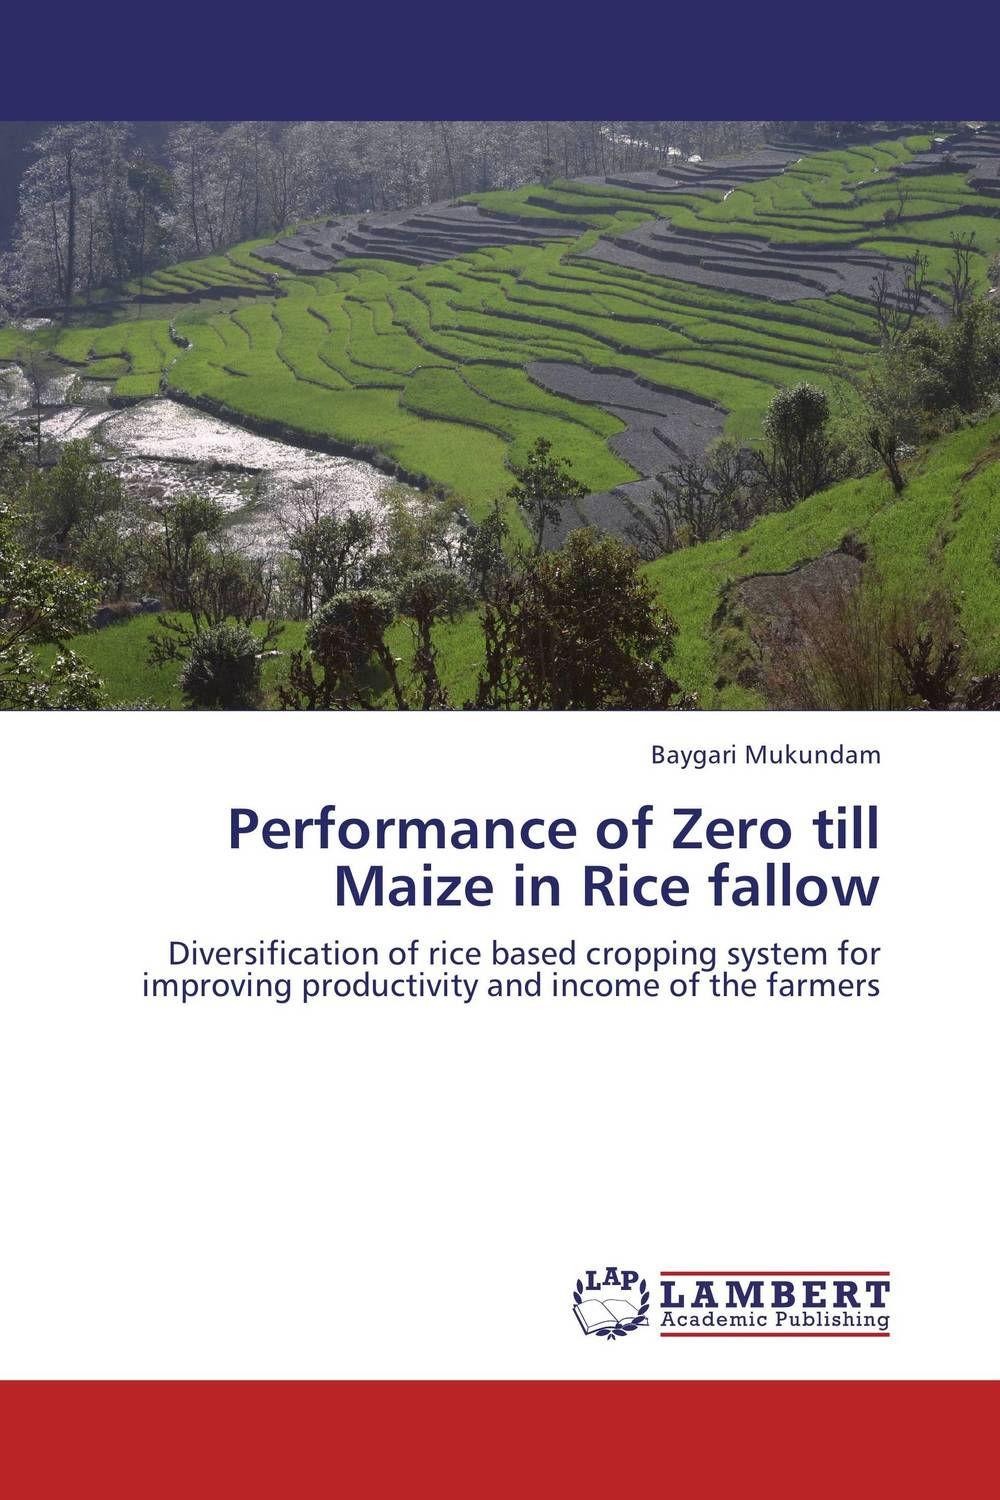 Performance of Zero till Maize in Rice fallow afghanistan 1 1 000 000